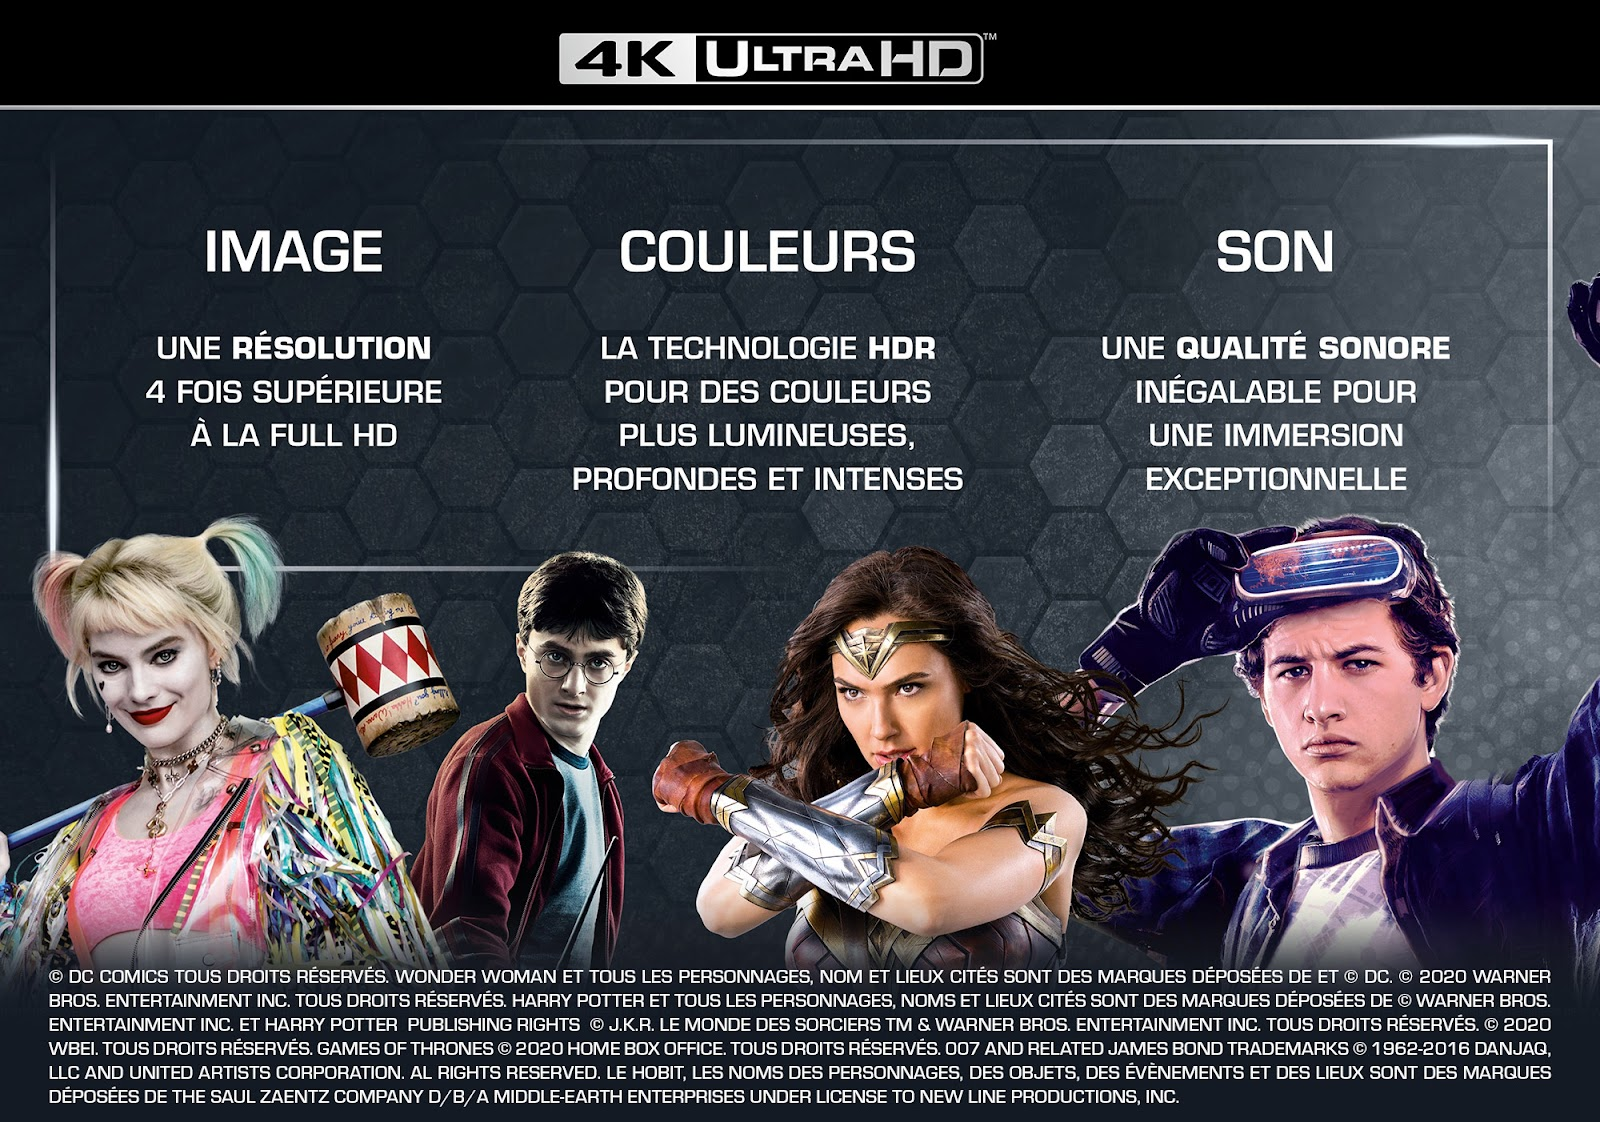 4K Ultra HD Blu-ray is the guarantee of enjoying the most beautiful picture, rich colors, high contrasts and optimal sound quality.